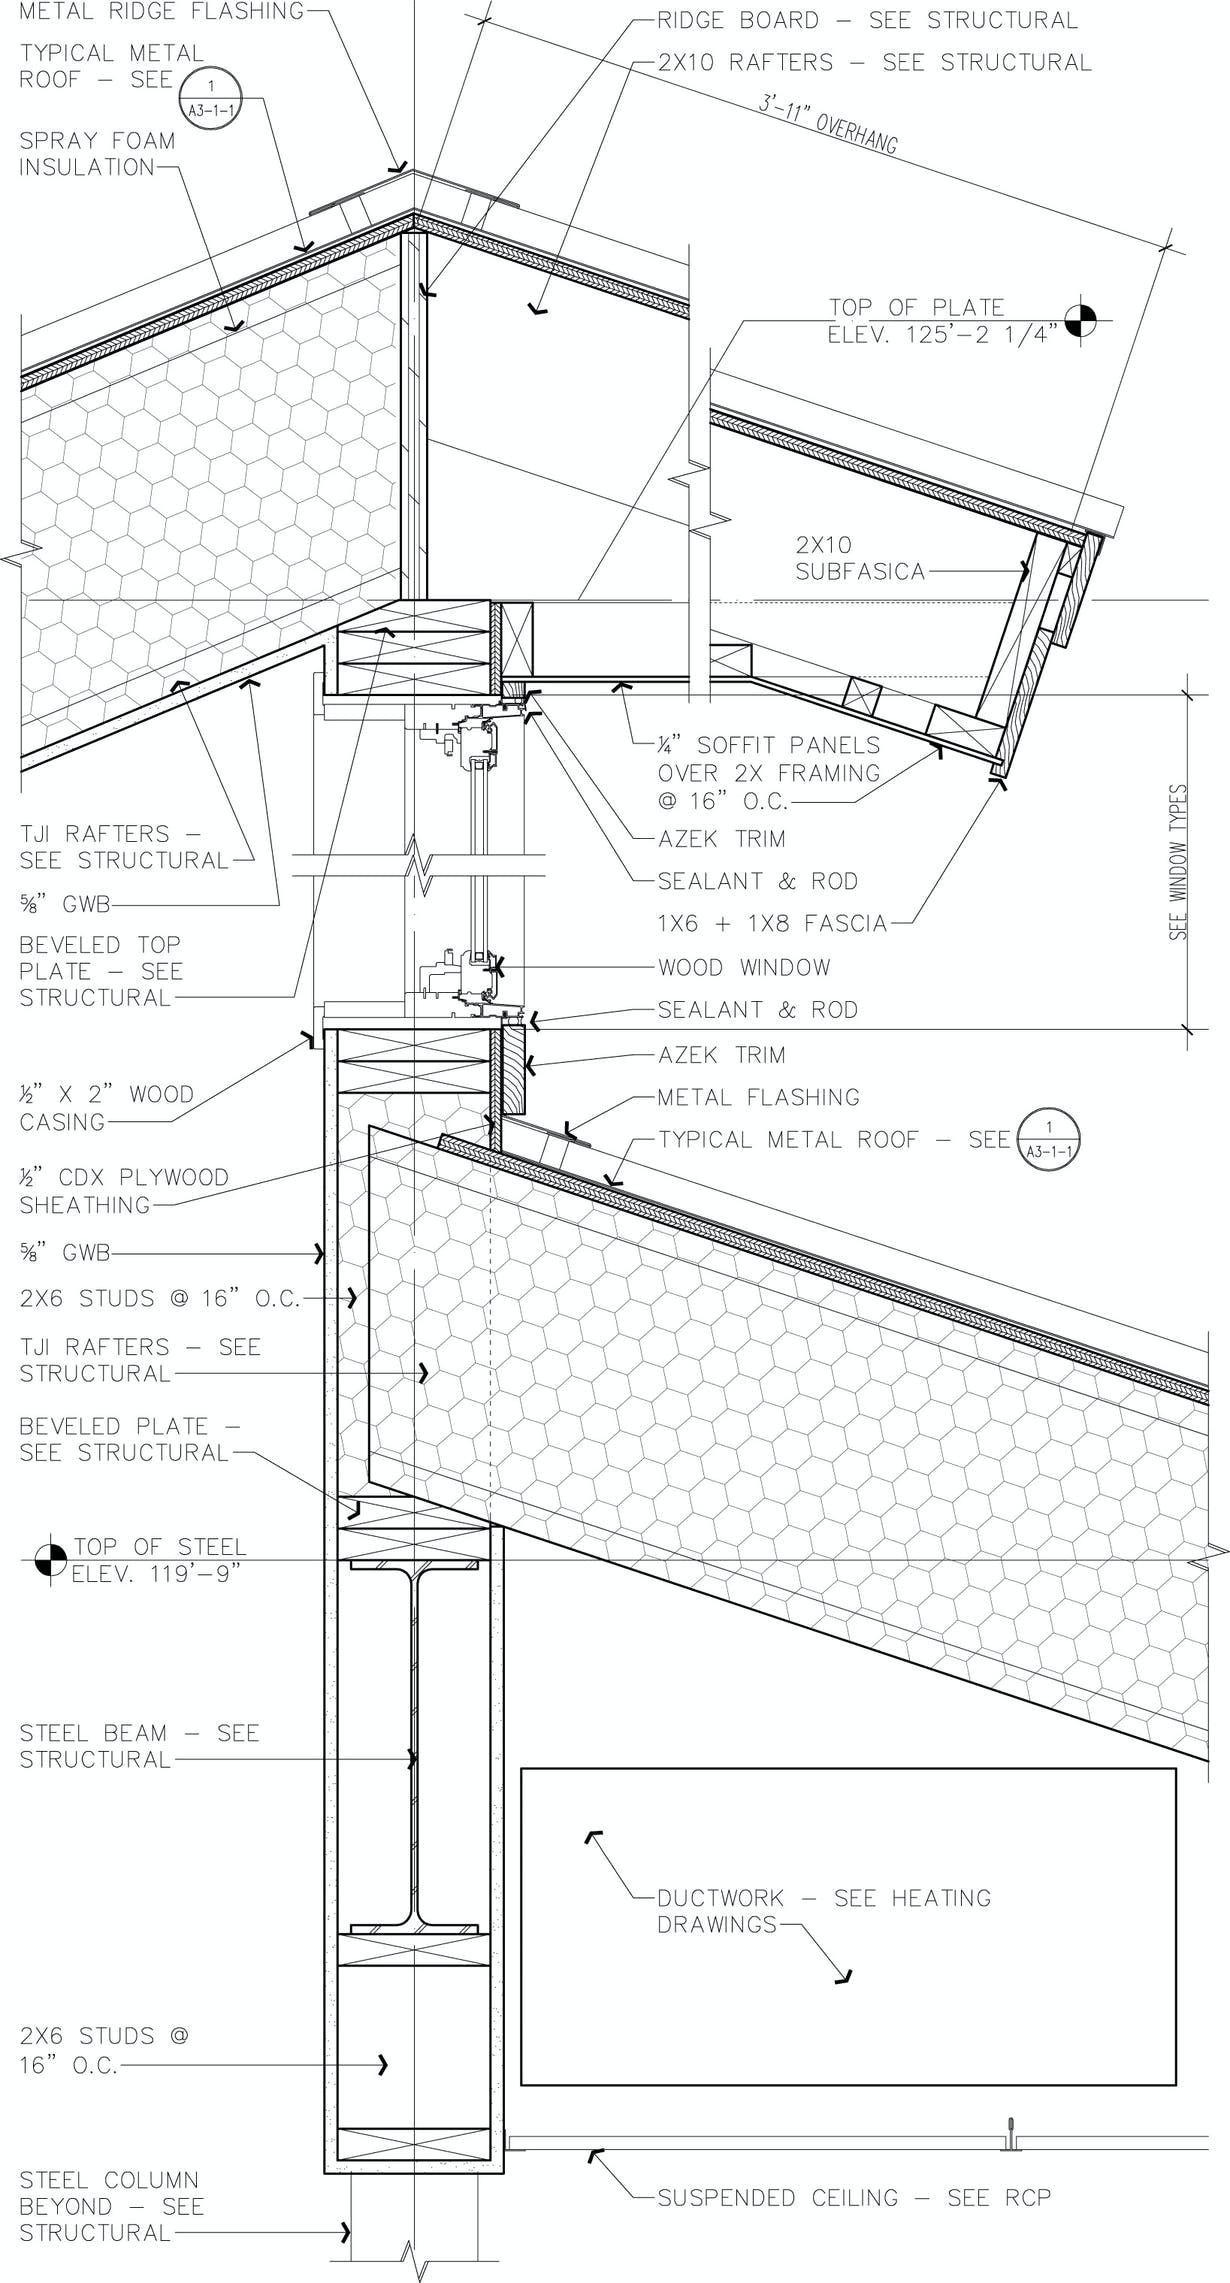 Gutters And Cornices For Masonry Walls Detailed Drawings Architecture Architecture Details